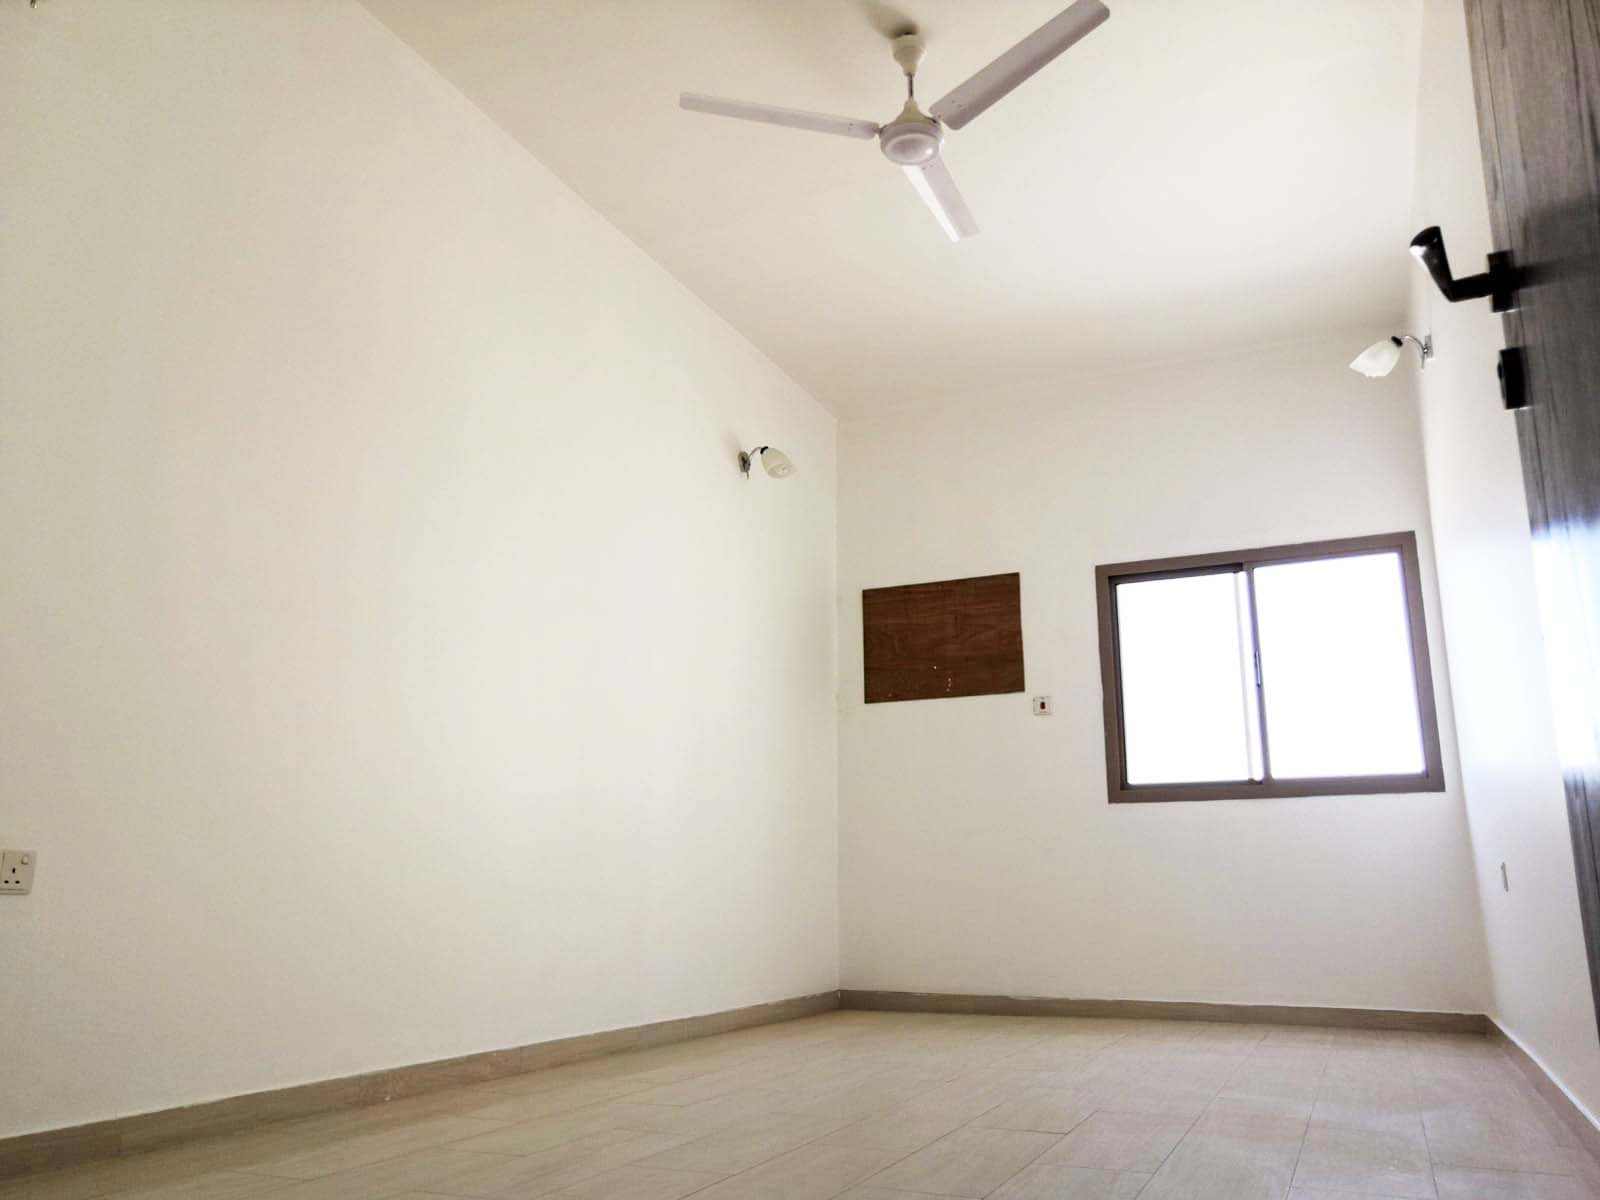 For rent a residential apartment in Tubli. Ref: TUB-MH-050